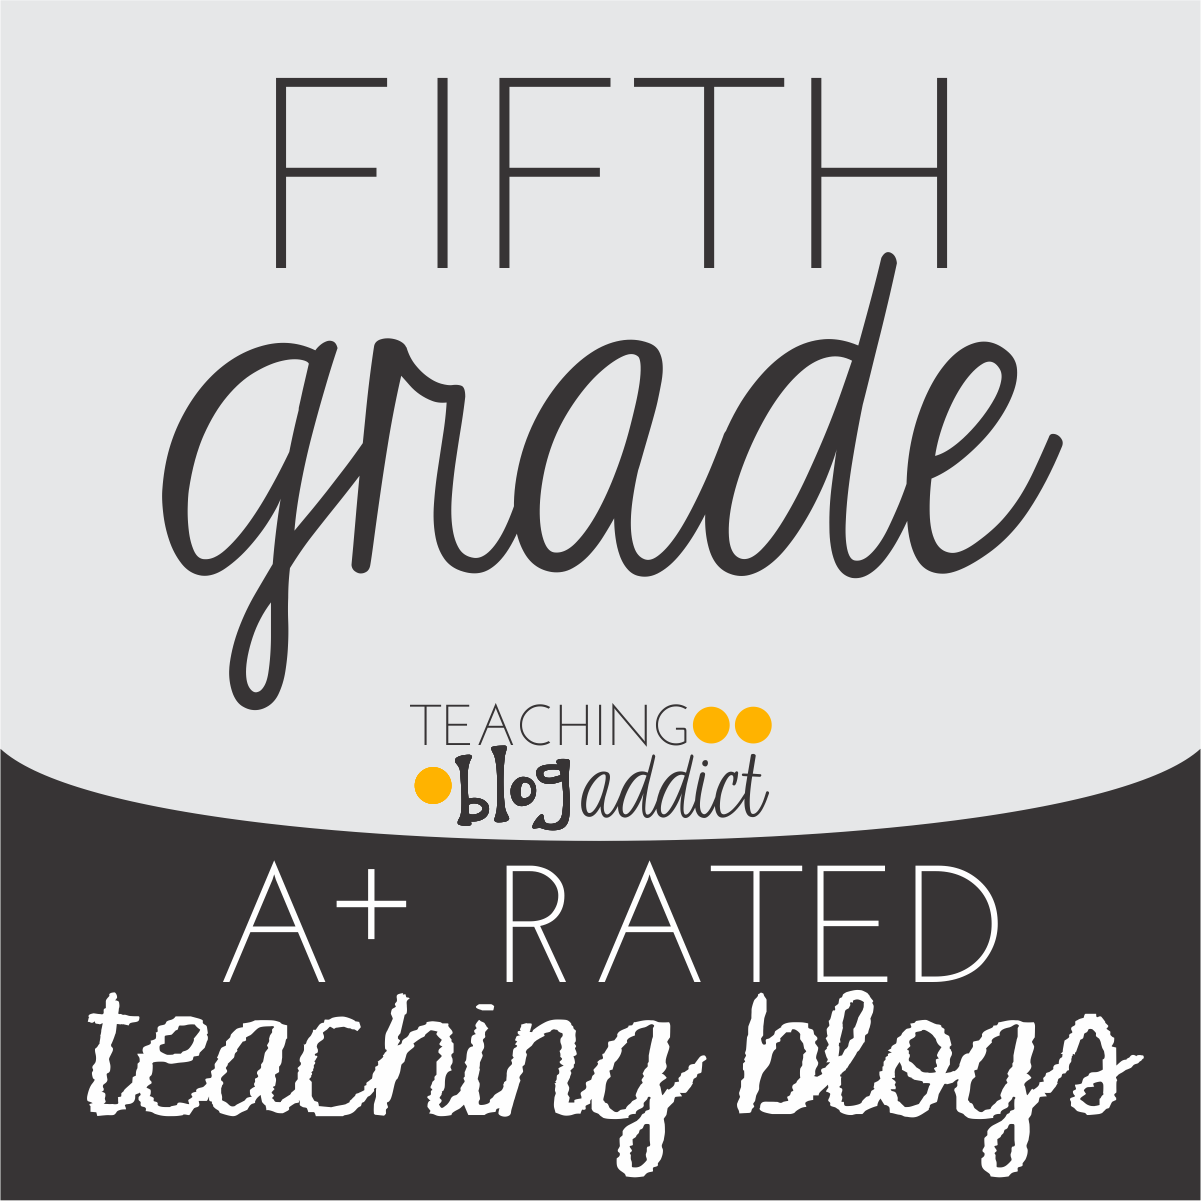 Worksheet Fifth Grade teaching blog addict 5th grade blogs